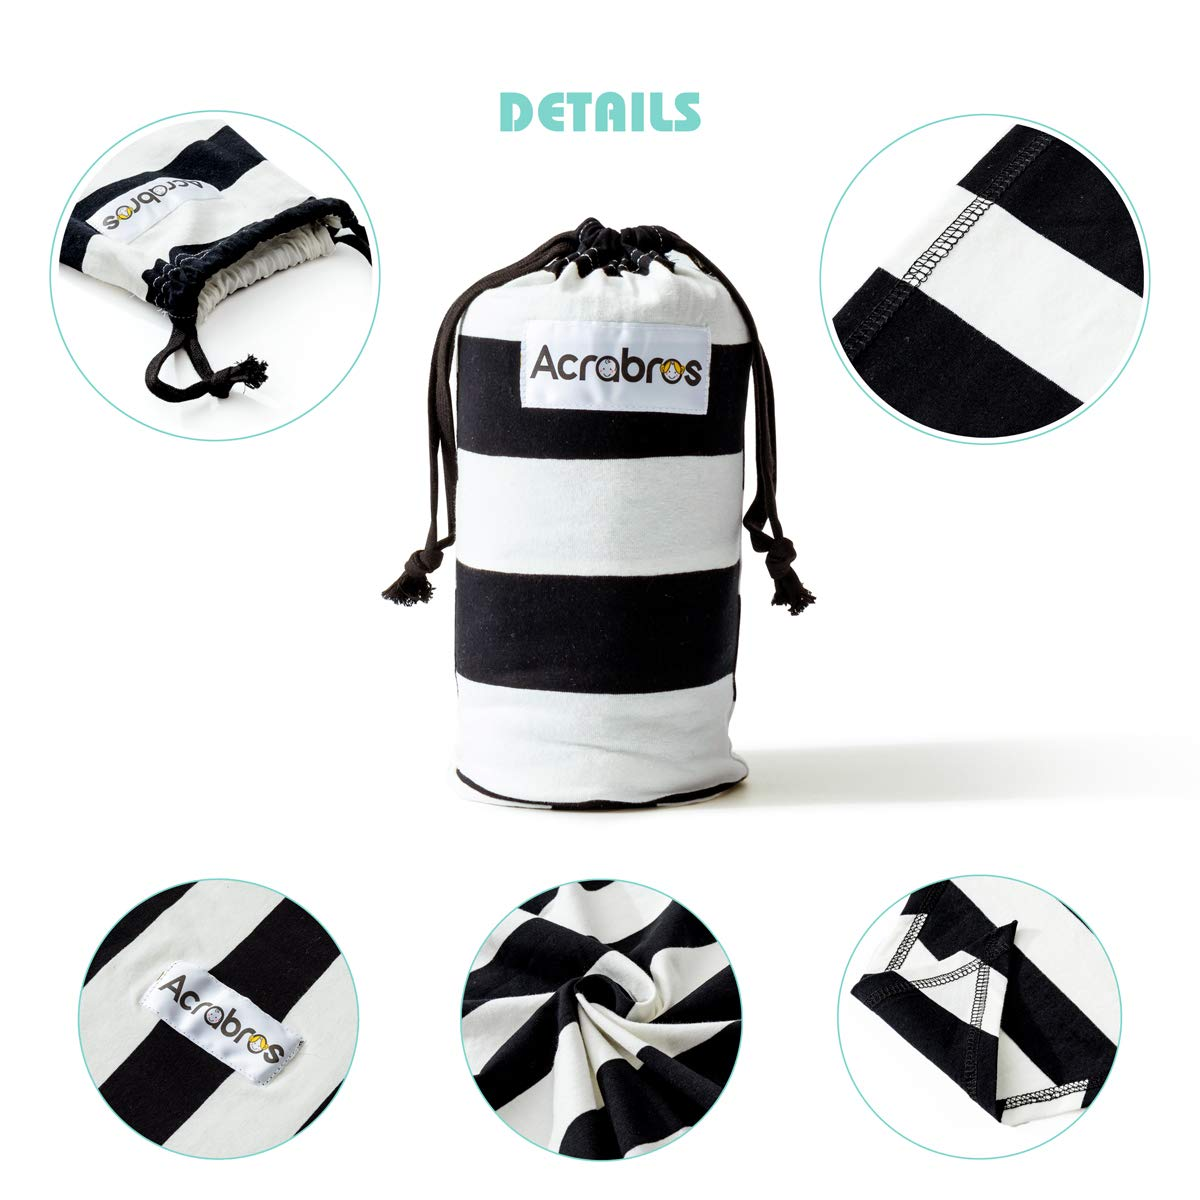 ACRABROS Baby Wrap Carrier,Hands Free Baby Carrier Wrap Sling,Stretch Cotton,Lightweight,Breathable,Perfect for Newborn Infants and Babies Shower Gift,Black//White 1.5 inch Stripe